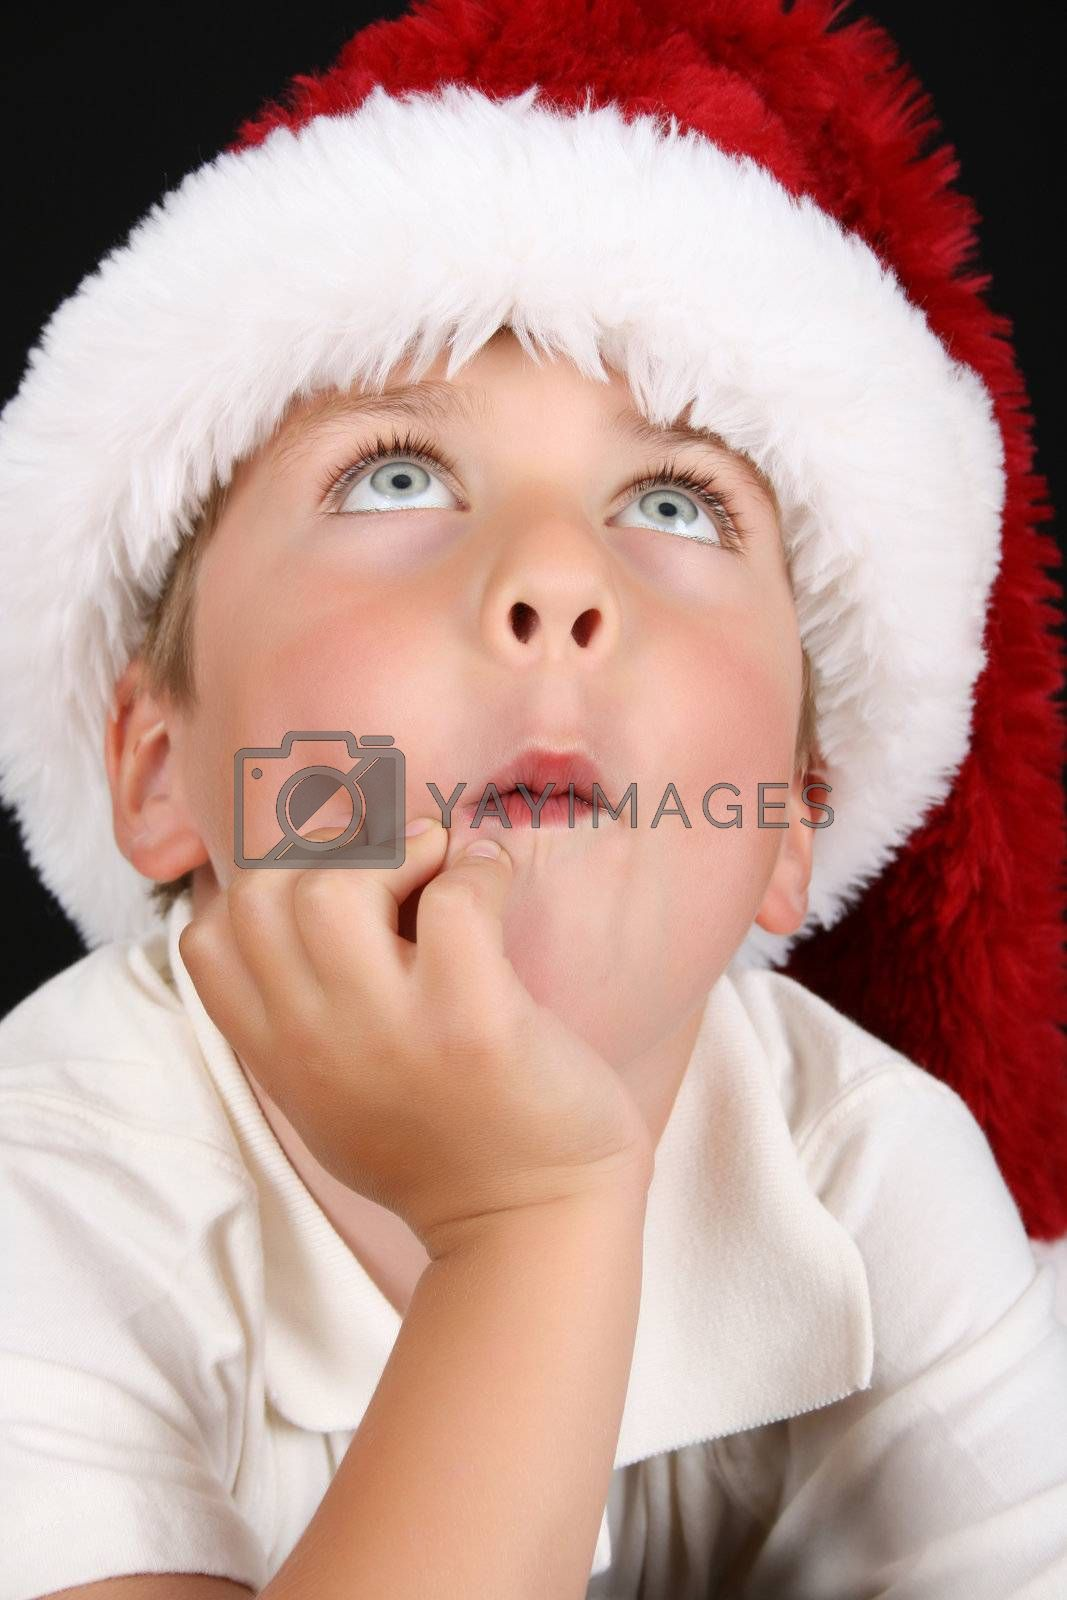 Cute christmas boy with beautiful blue eyes looking up